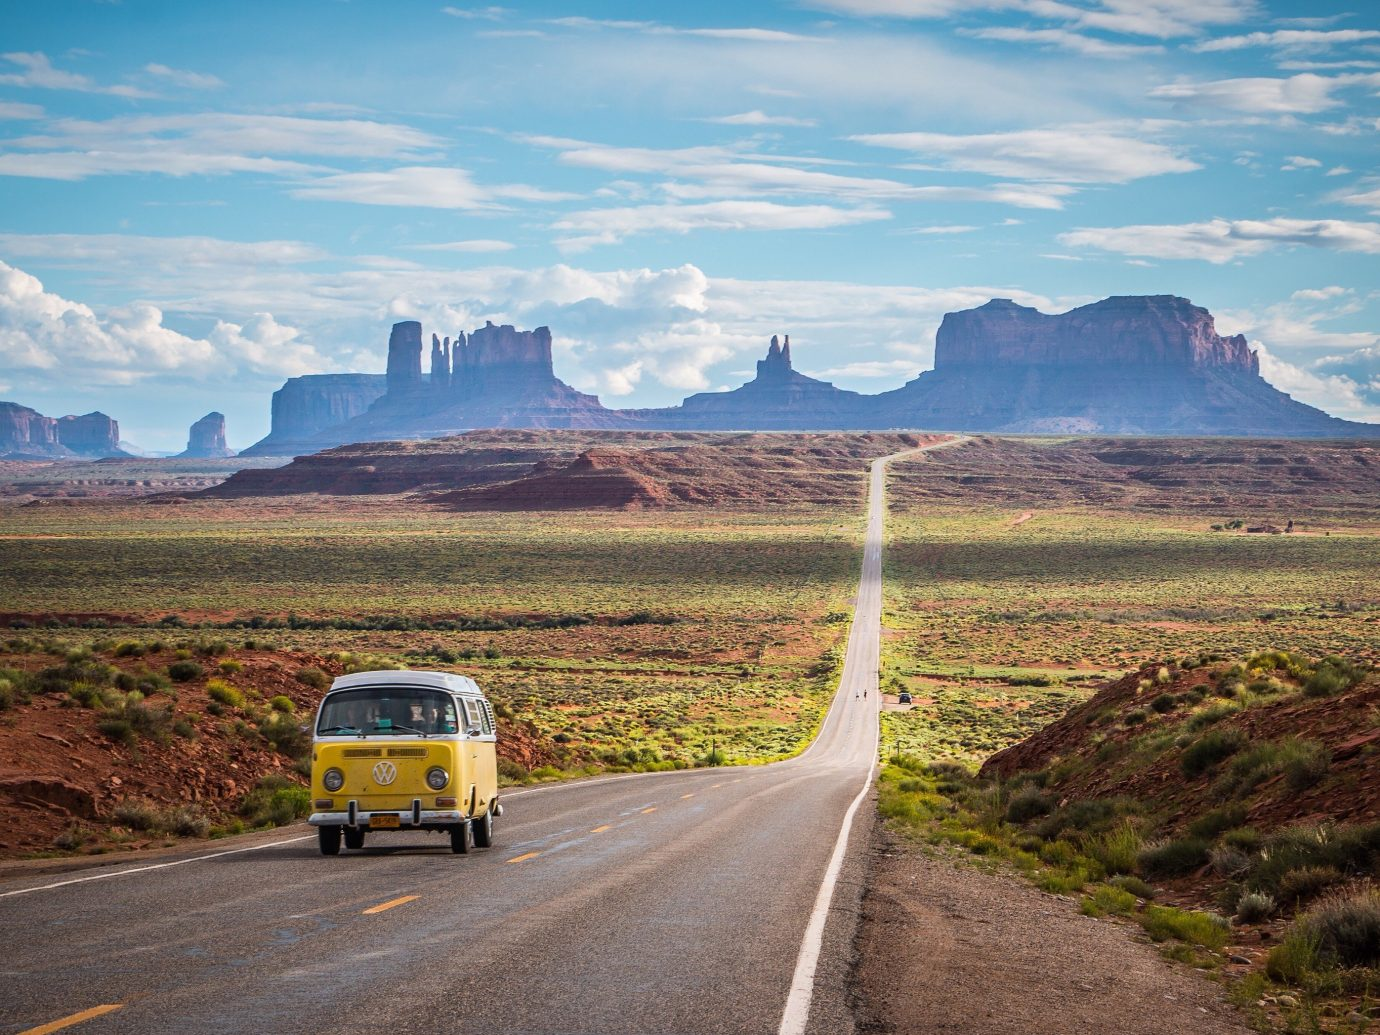 America American Southwest Arts + Culture Brooklyn Canada Hawaii Hotels Los Angeles Morocco New York Oahu Offbeat Road Trips Scotland Toronto Travel Tips Trip Ideas mountain outdoor grass road sky mountainous landforms geographical feature highway horizon road trip landscape morning way valley infrastructure prairie plain mountain range plateau mountain pass dirt